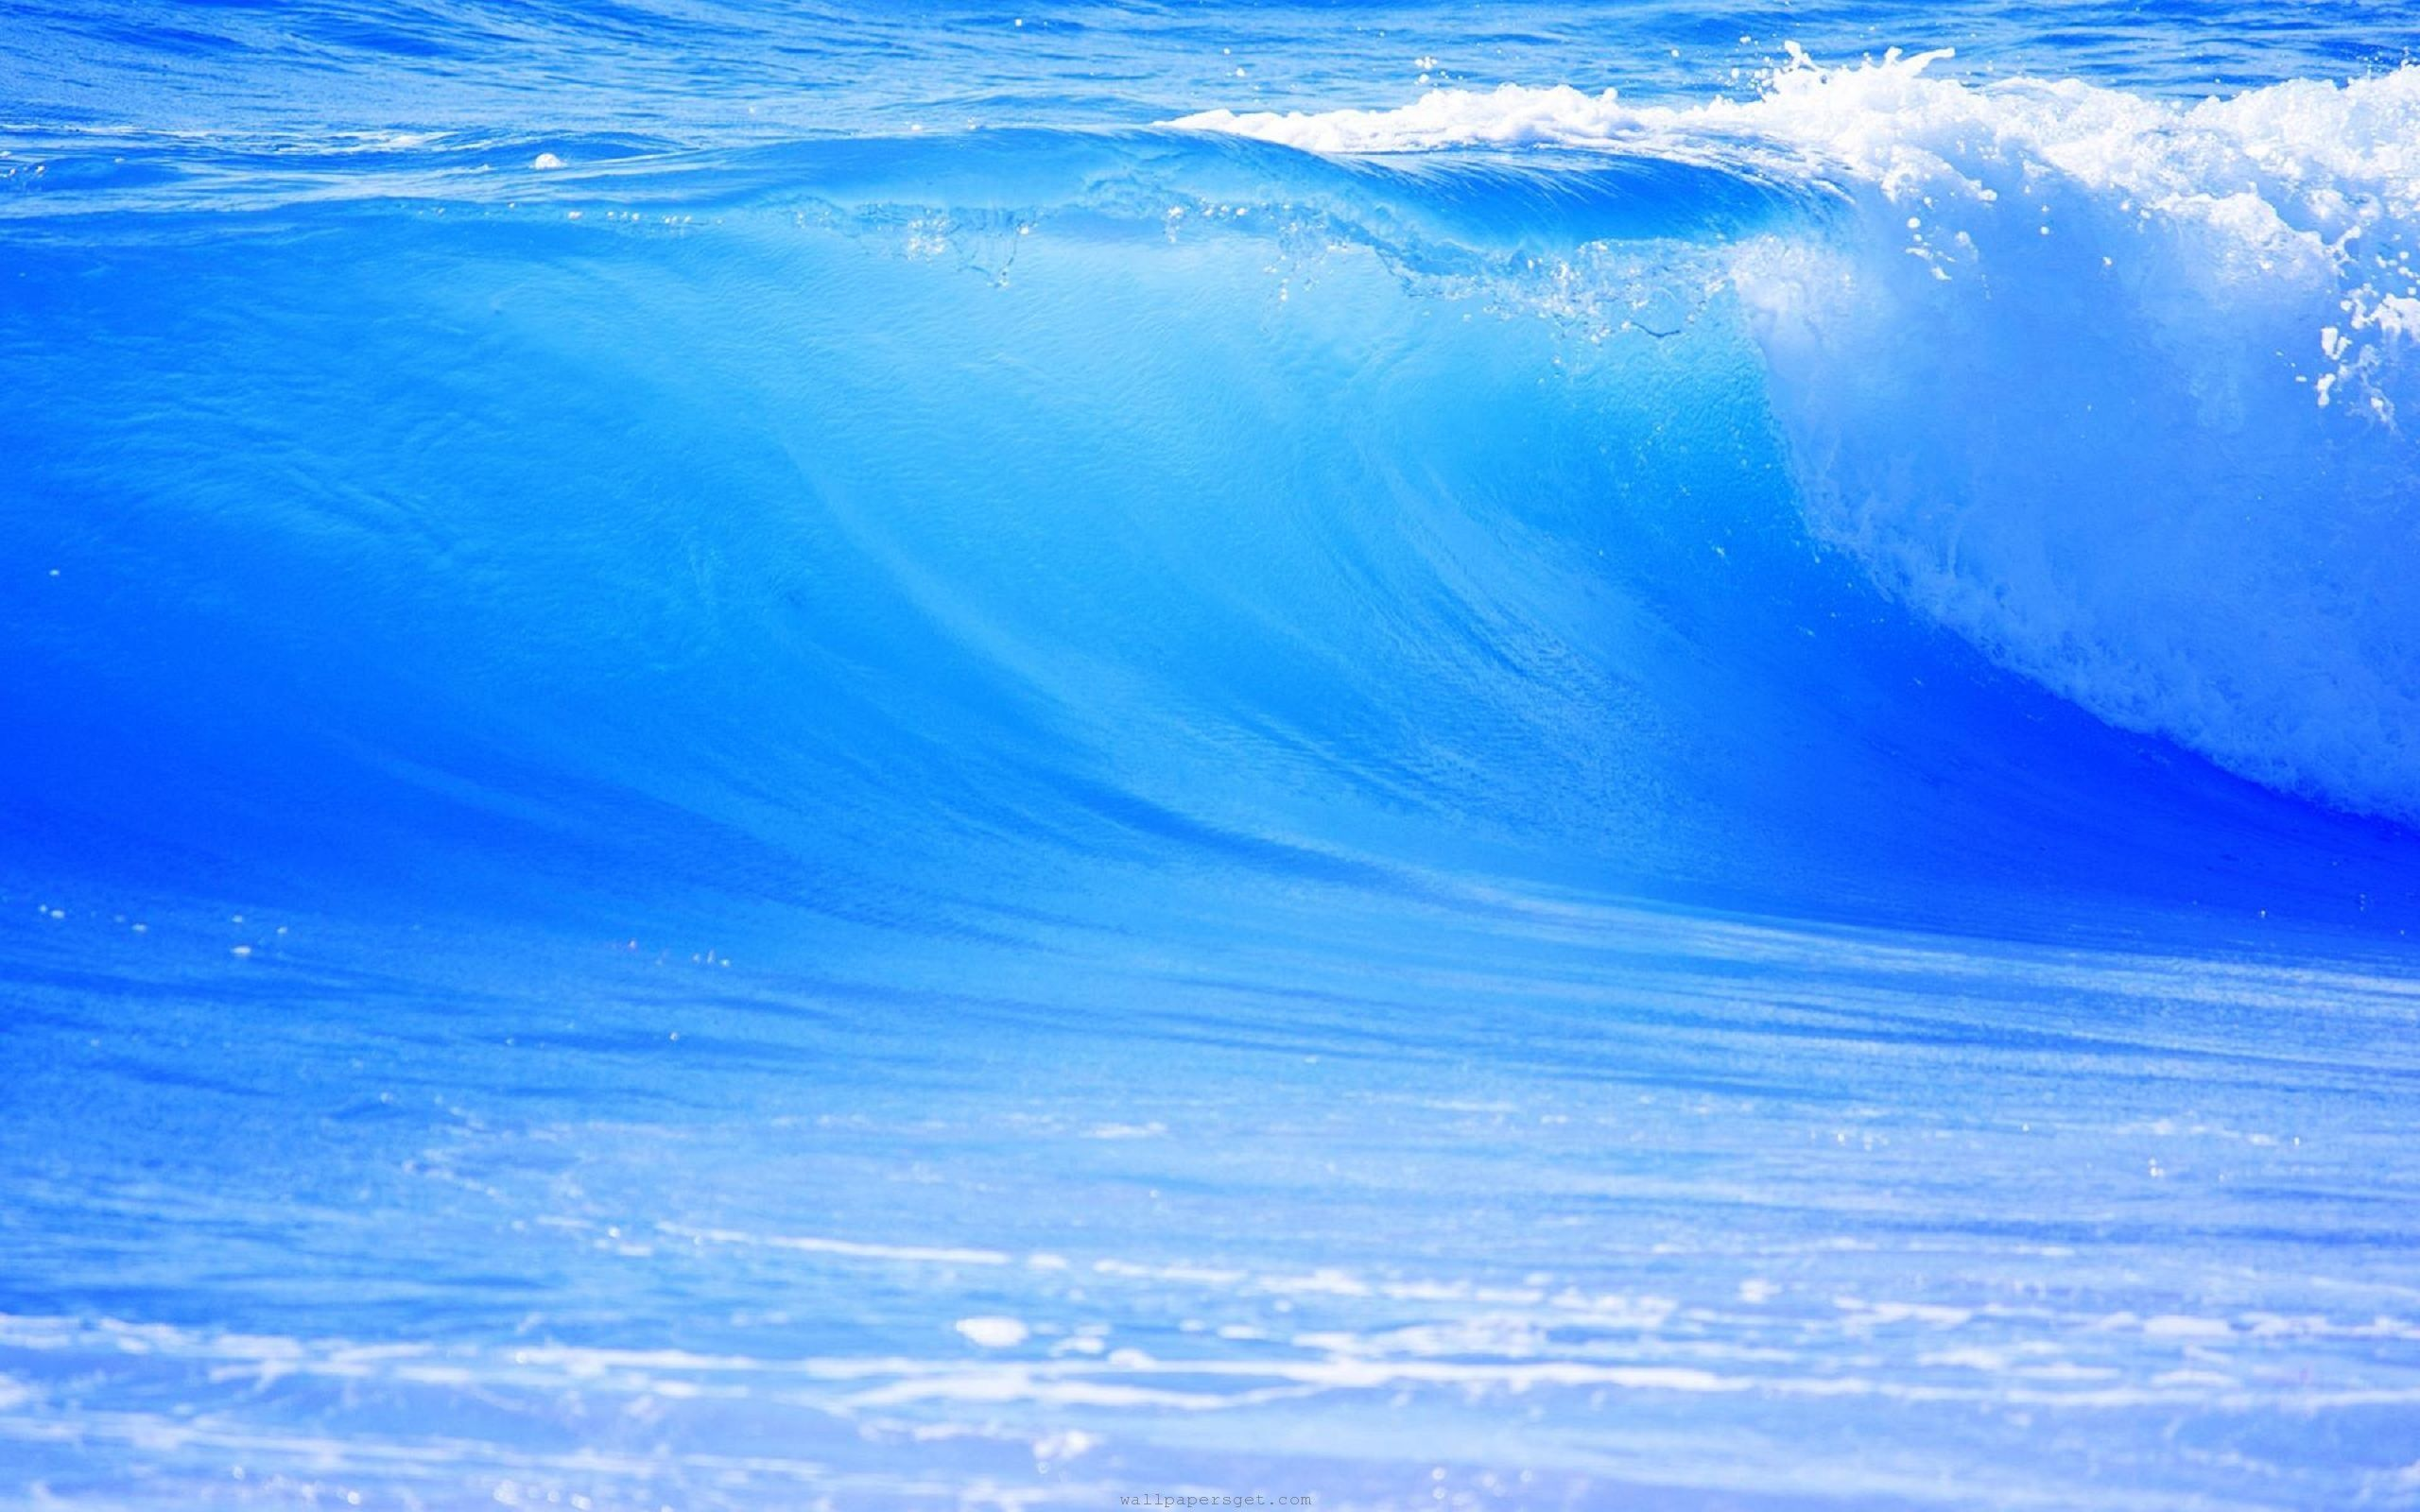 hd beautiful nature scenery wallpaper blue wave ocean ~ most